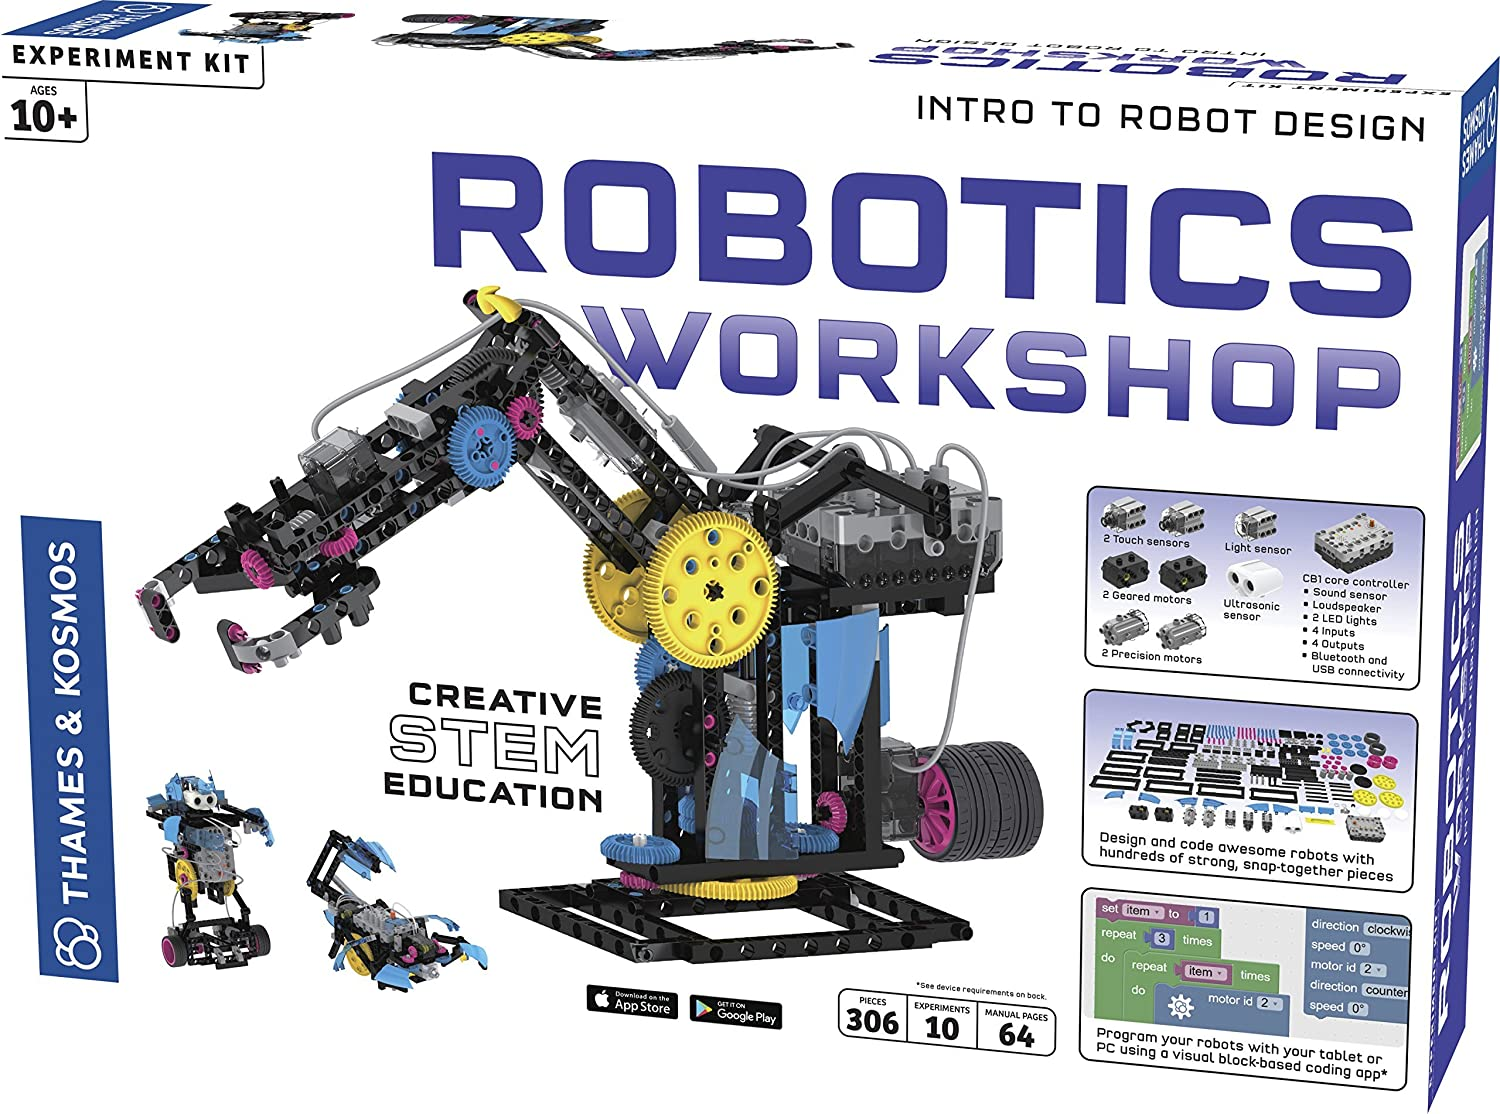 Thames & Kosmos Robotics Workshop Model Building & Science Experiment Kit   Build & Program 10 Robots with Ultrasonic Sensors   Program & Control with App for iOS & Android